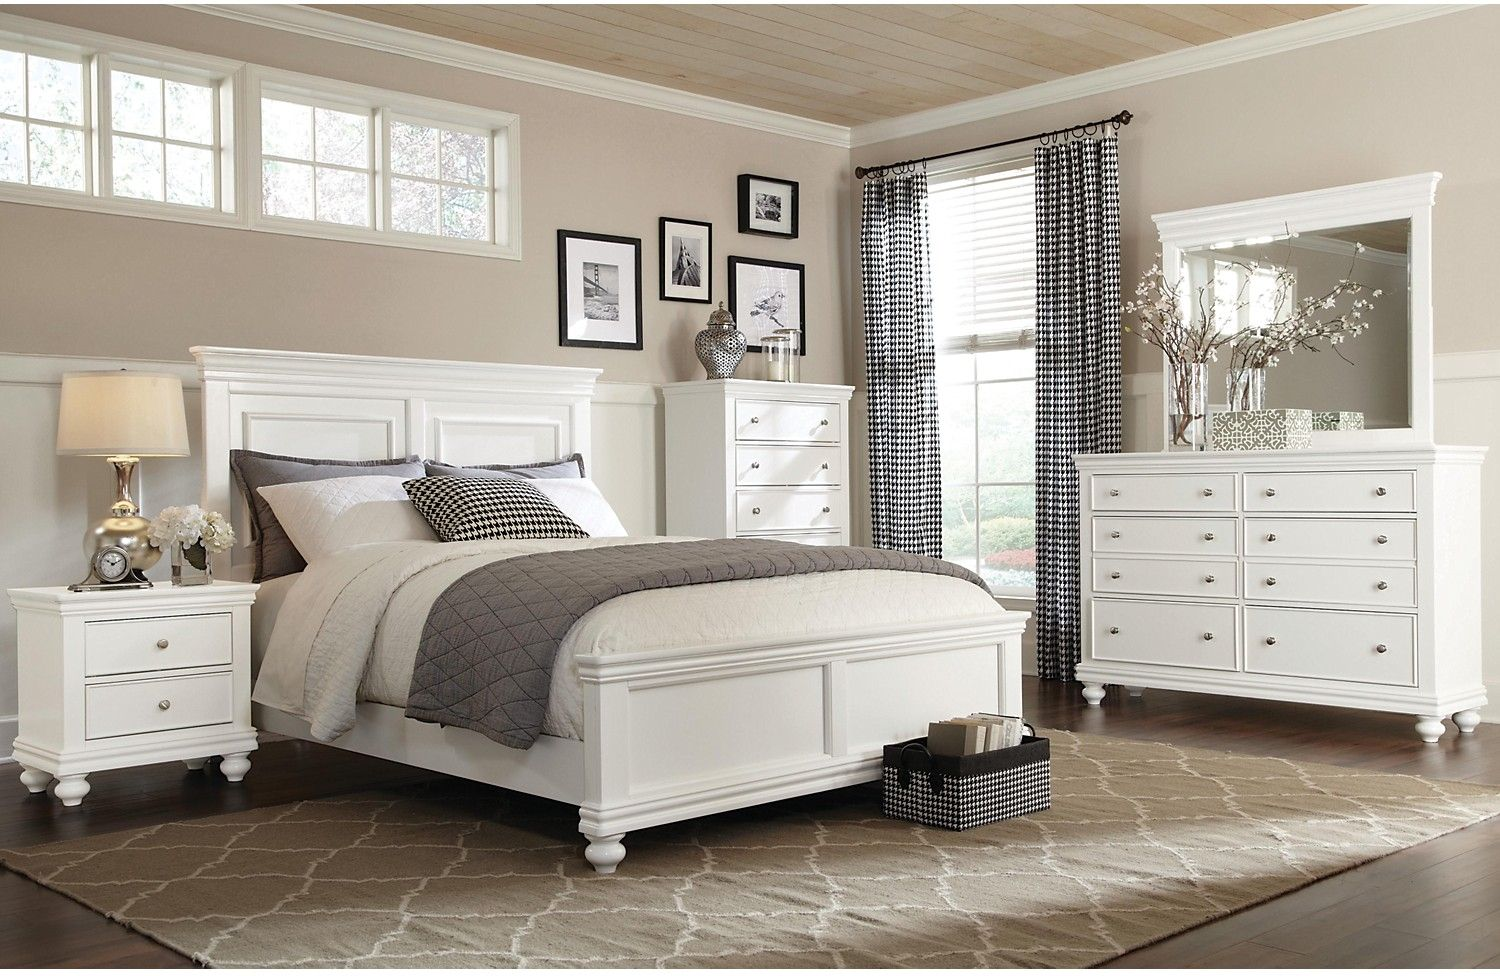 Bridgeport 6 piece queen bedroom set white queen for Bedroom furniture set